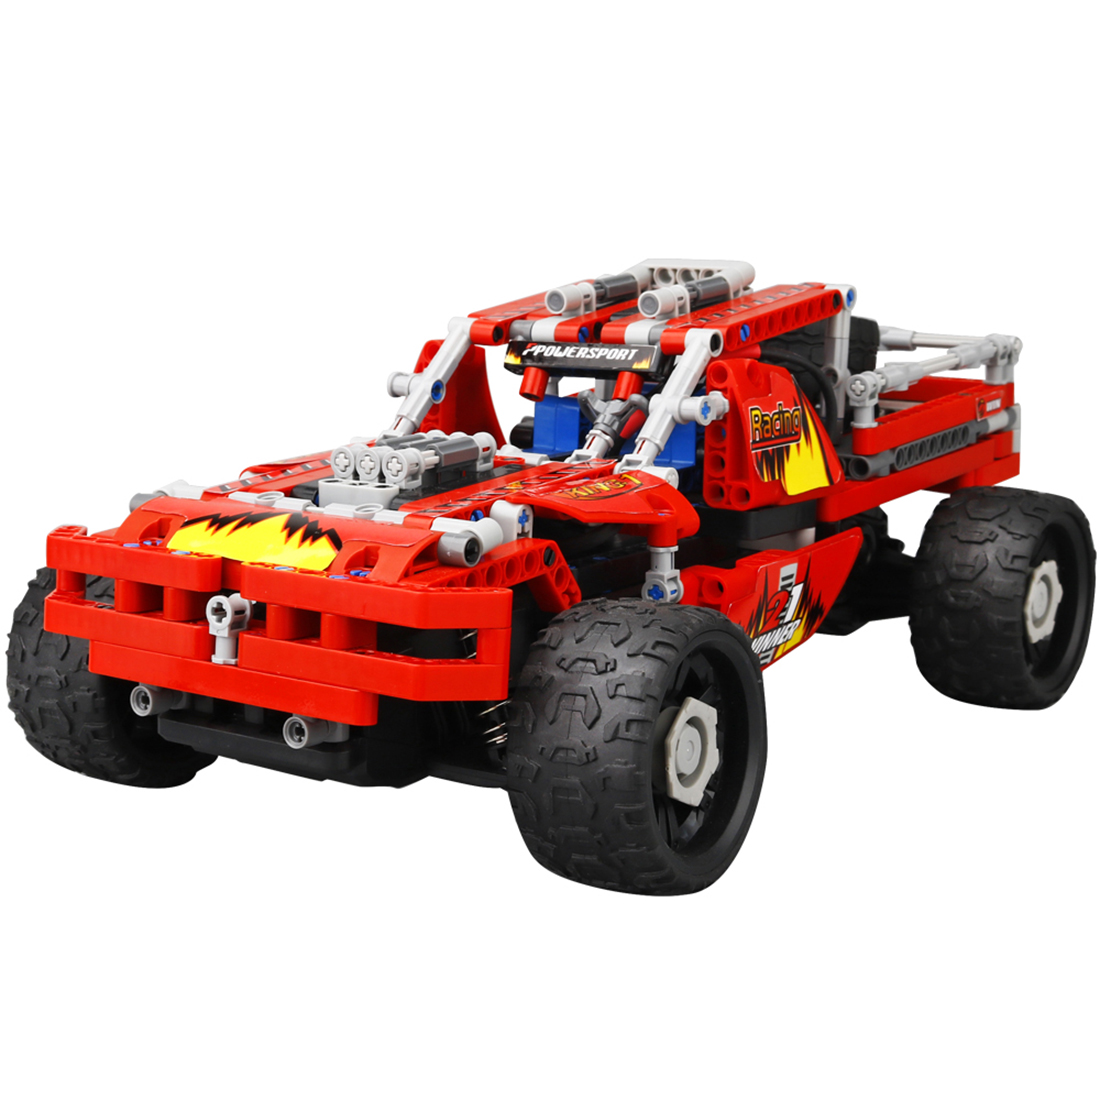 DIY Building Block High Speed RC Car Off-road Vehicle Deformation Vehicle Educational Toy - Warrior Type Red кабель hdmi 3 0м gembird v1 4 углов разъем черный позол разъемы экран пакет cc hdmi490 10